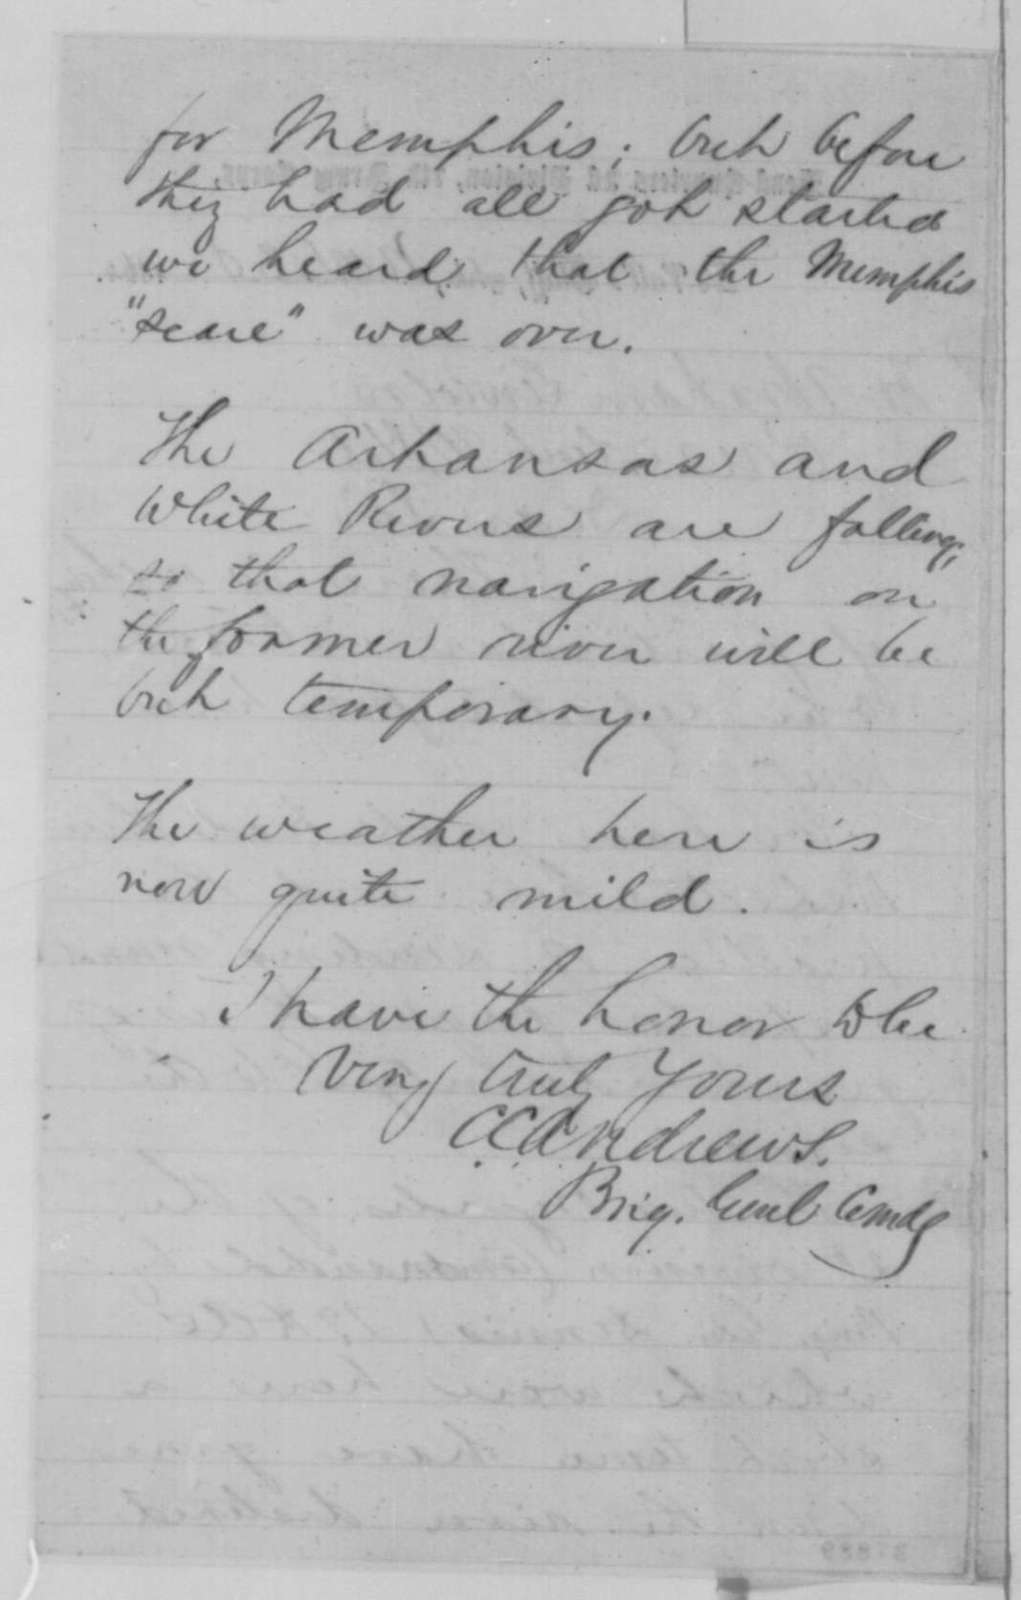 Christopher C. Andrews to Abraham Lincoln, Wednesday, November 30, 1864  (Military affairs in Arkansas)